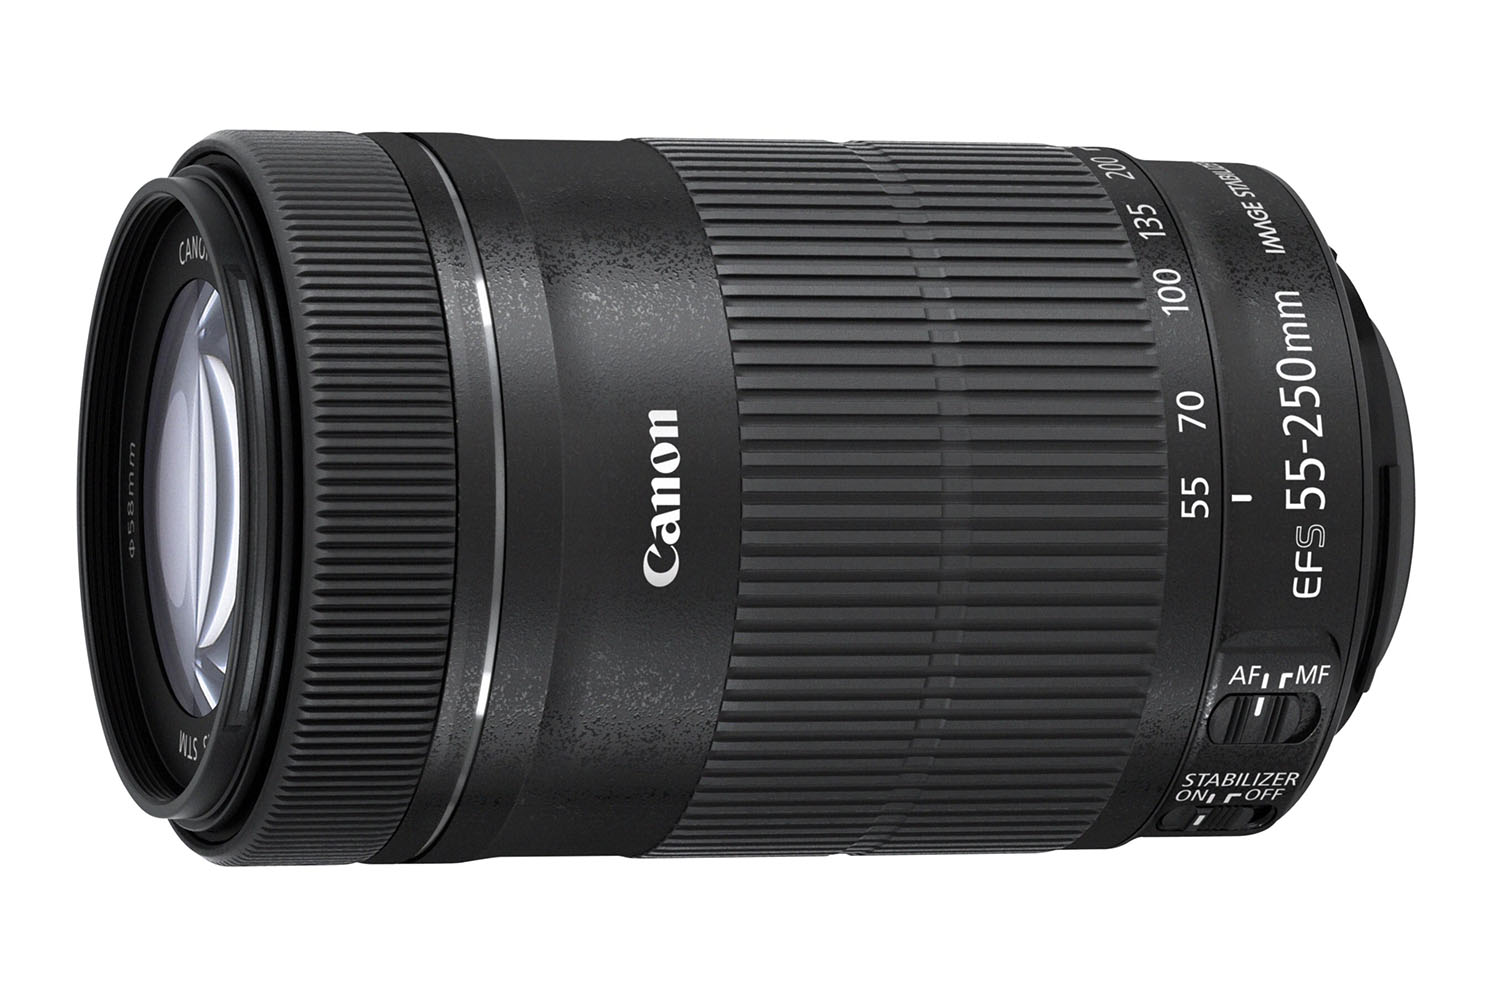 The affordable Canon EF-S 55-250mm f/4-5.6 IS STM